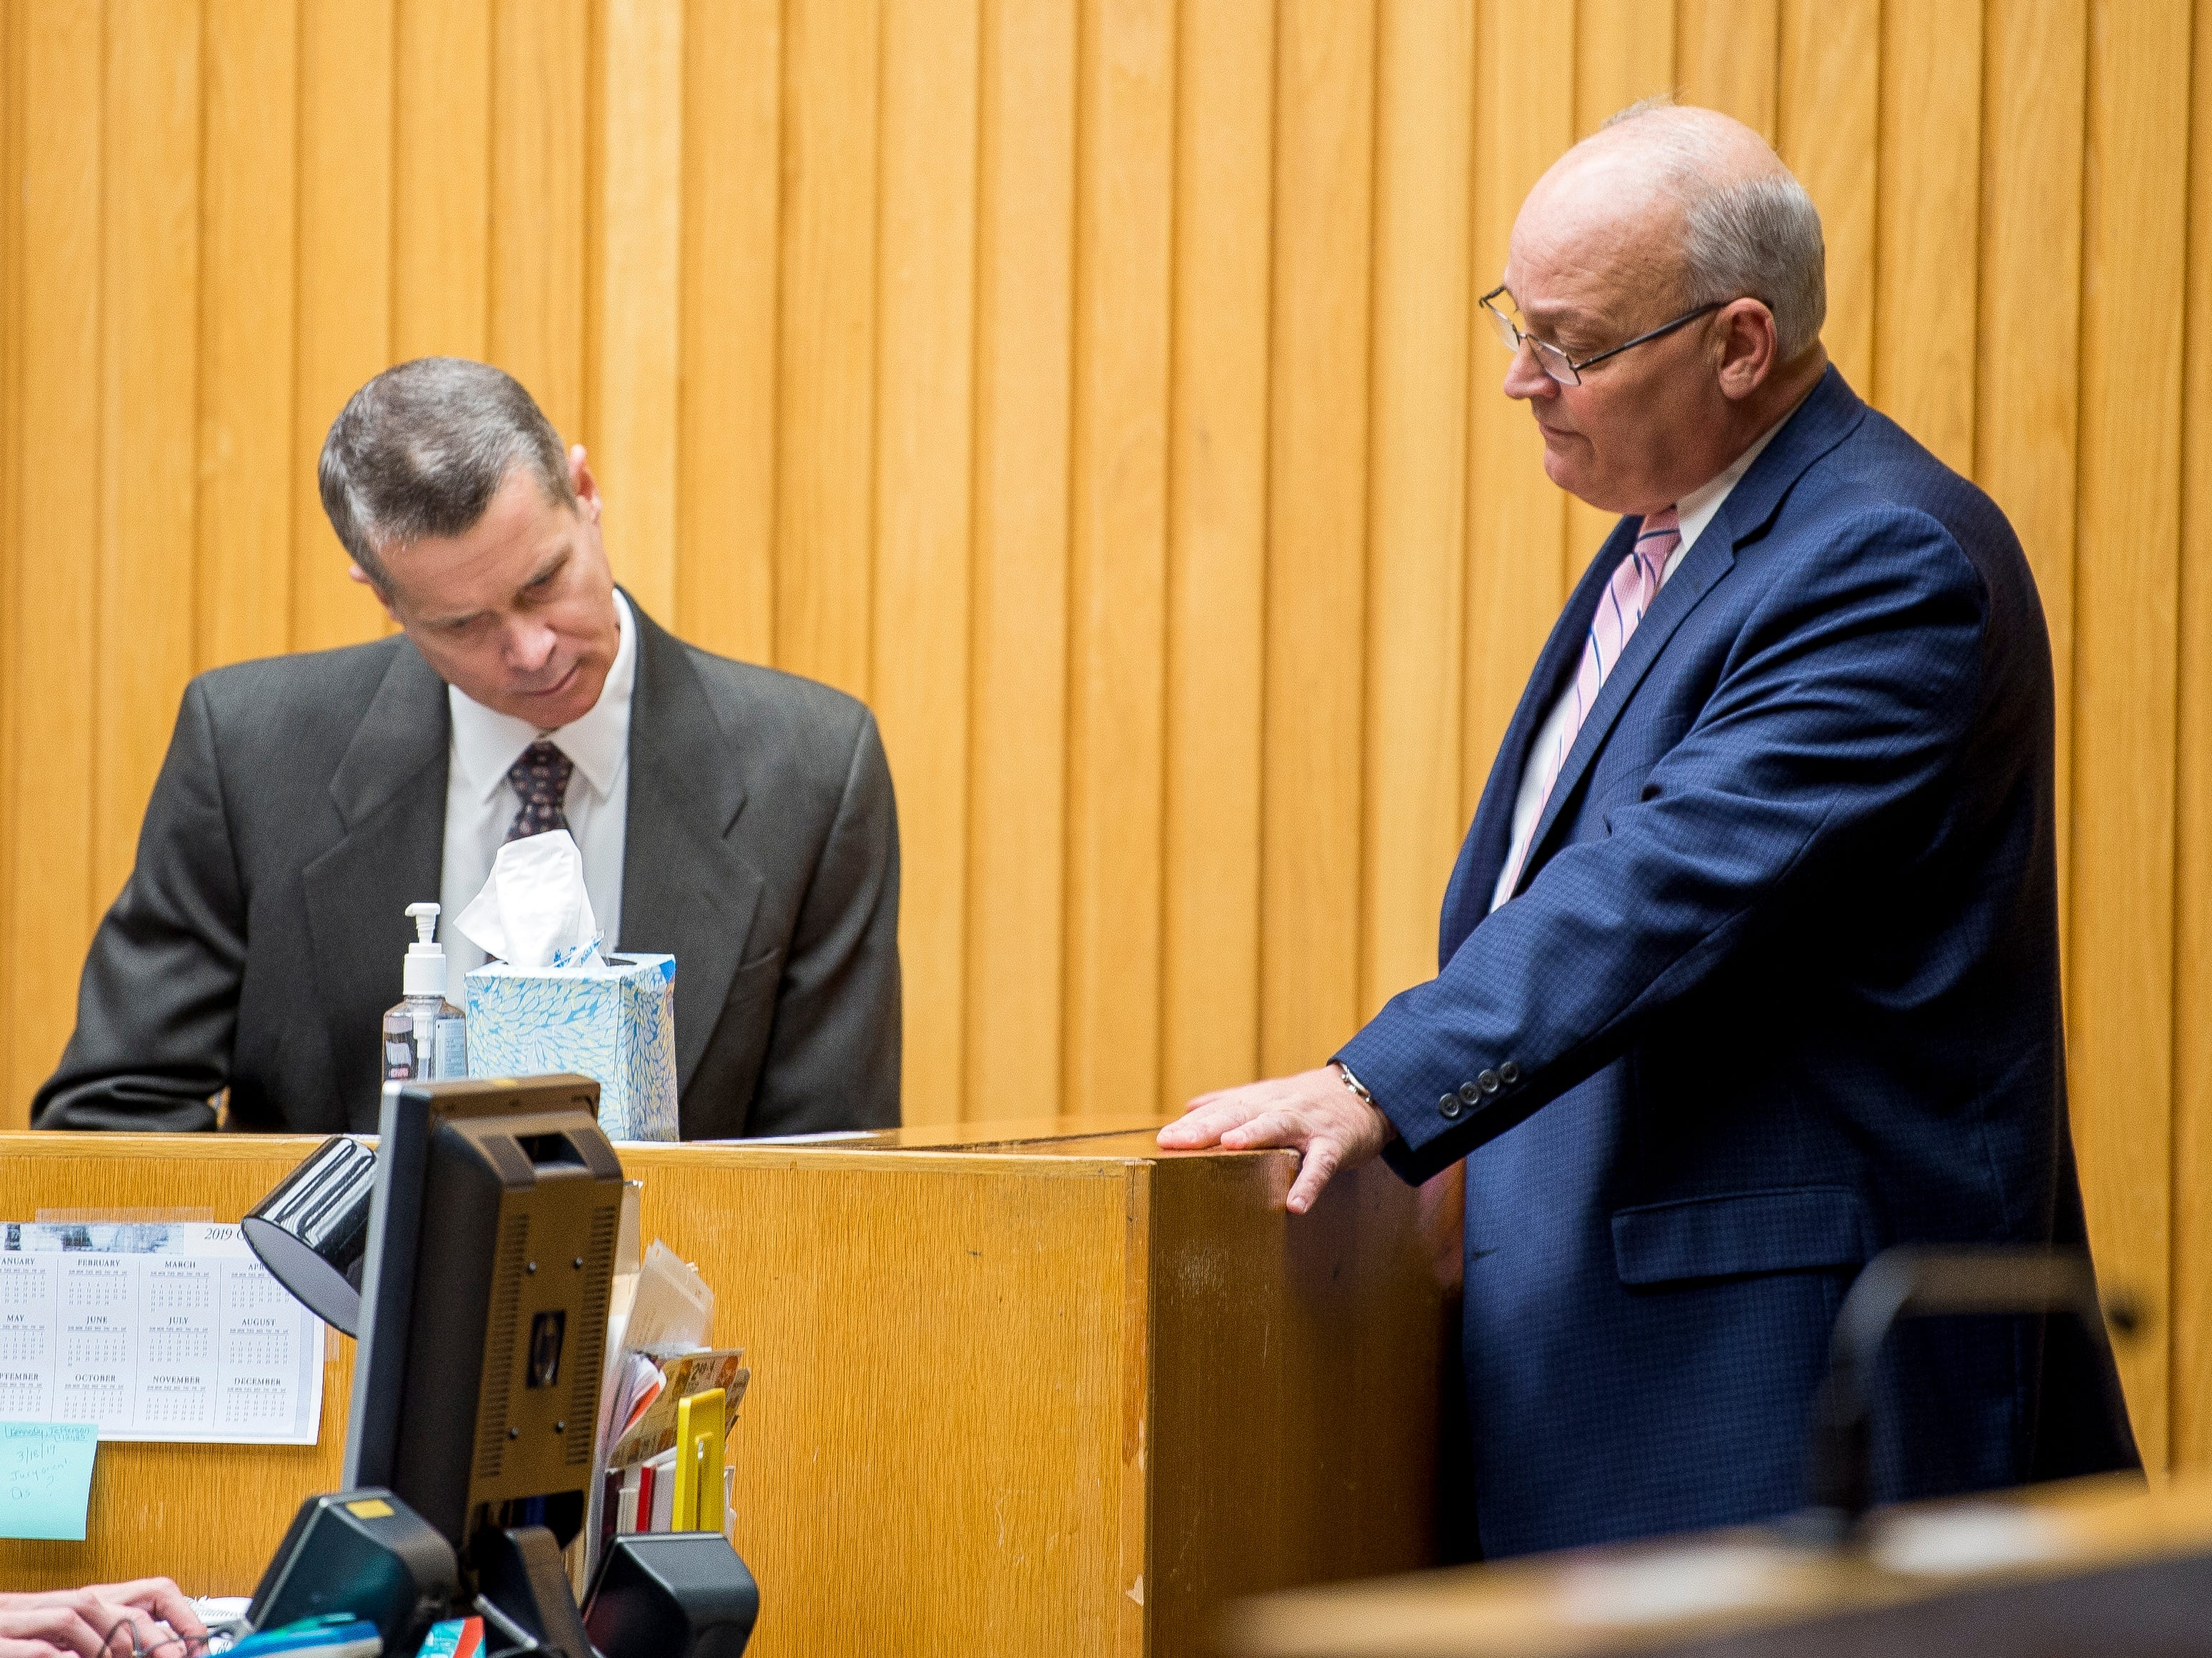 Defense attorney Gregg Harrison, right, shows KCSO's James Smithhart a document during David Lynn Richards' trial in Knox County Criminal Court on Friday, February 8, 2019.